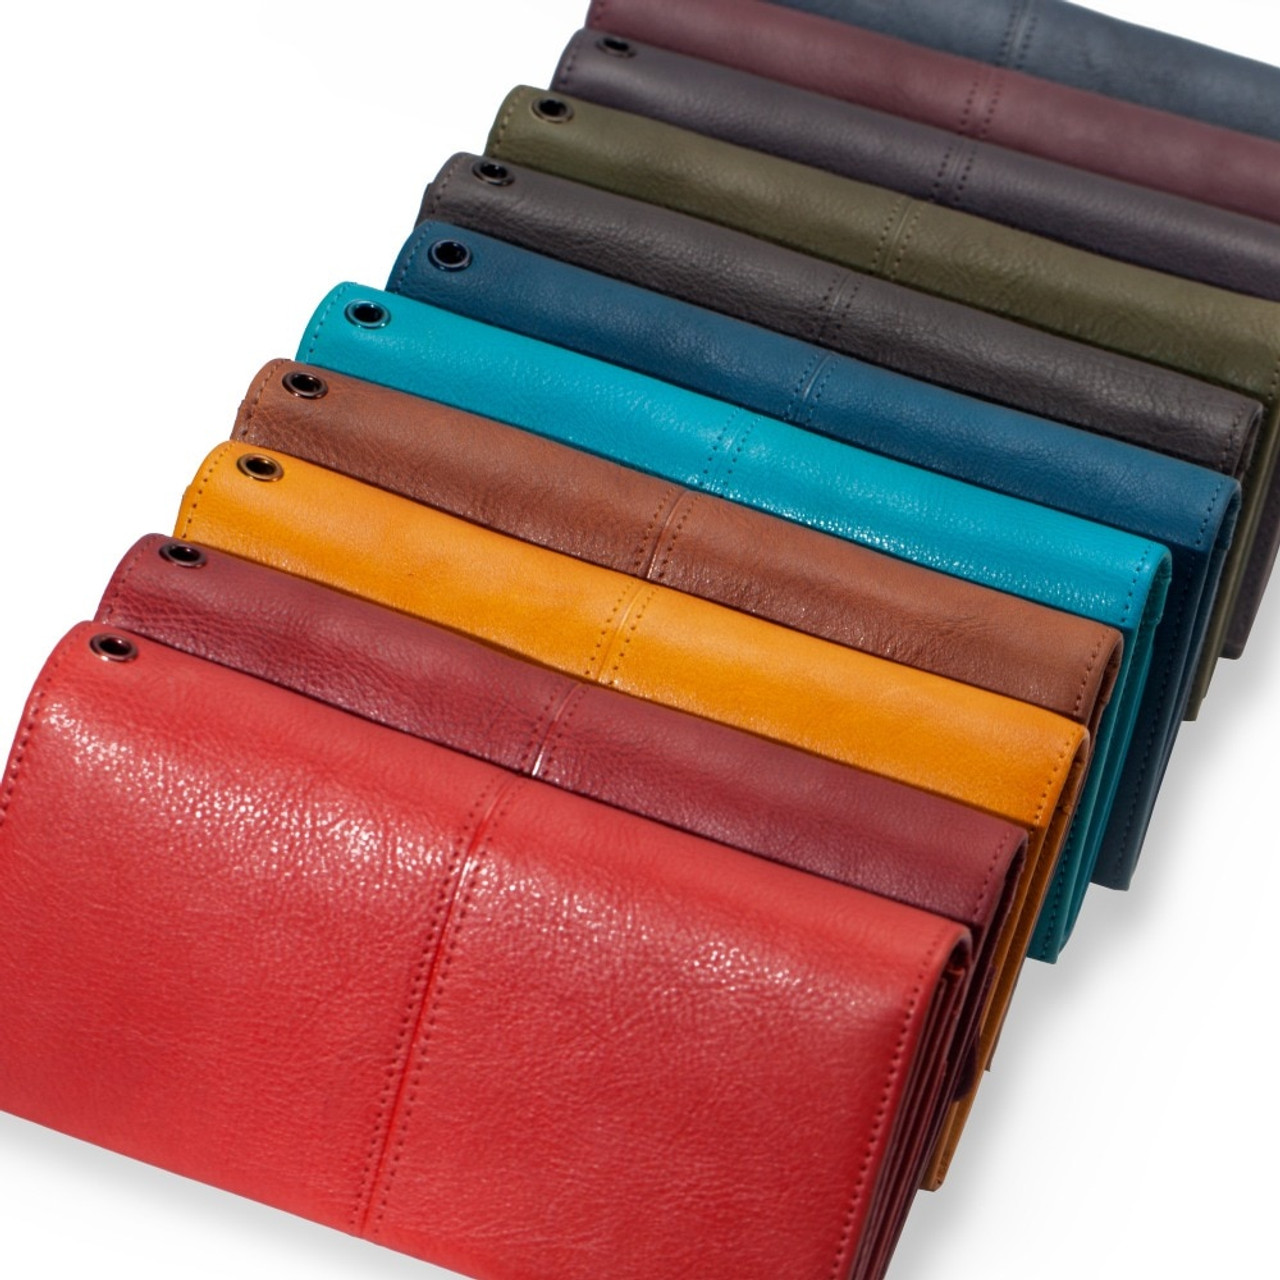 ... Women Wallet Long Genuine Leather Large Capacity Bags Ladies Travel  Clutch Girls Purse Phone Bag Woman ... 2734306a821e